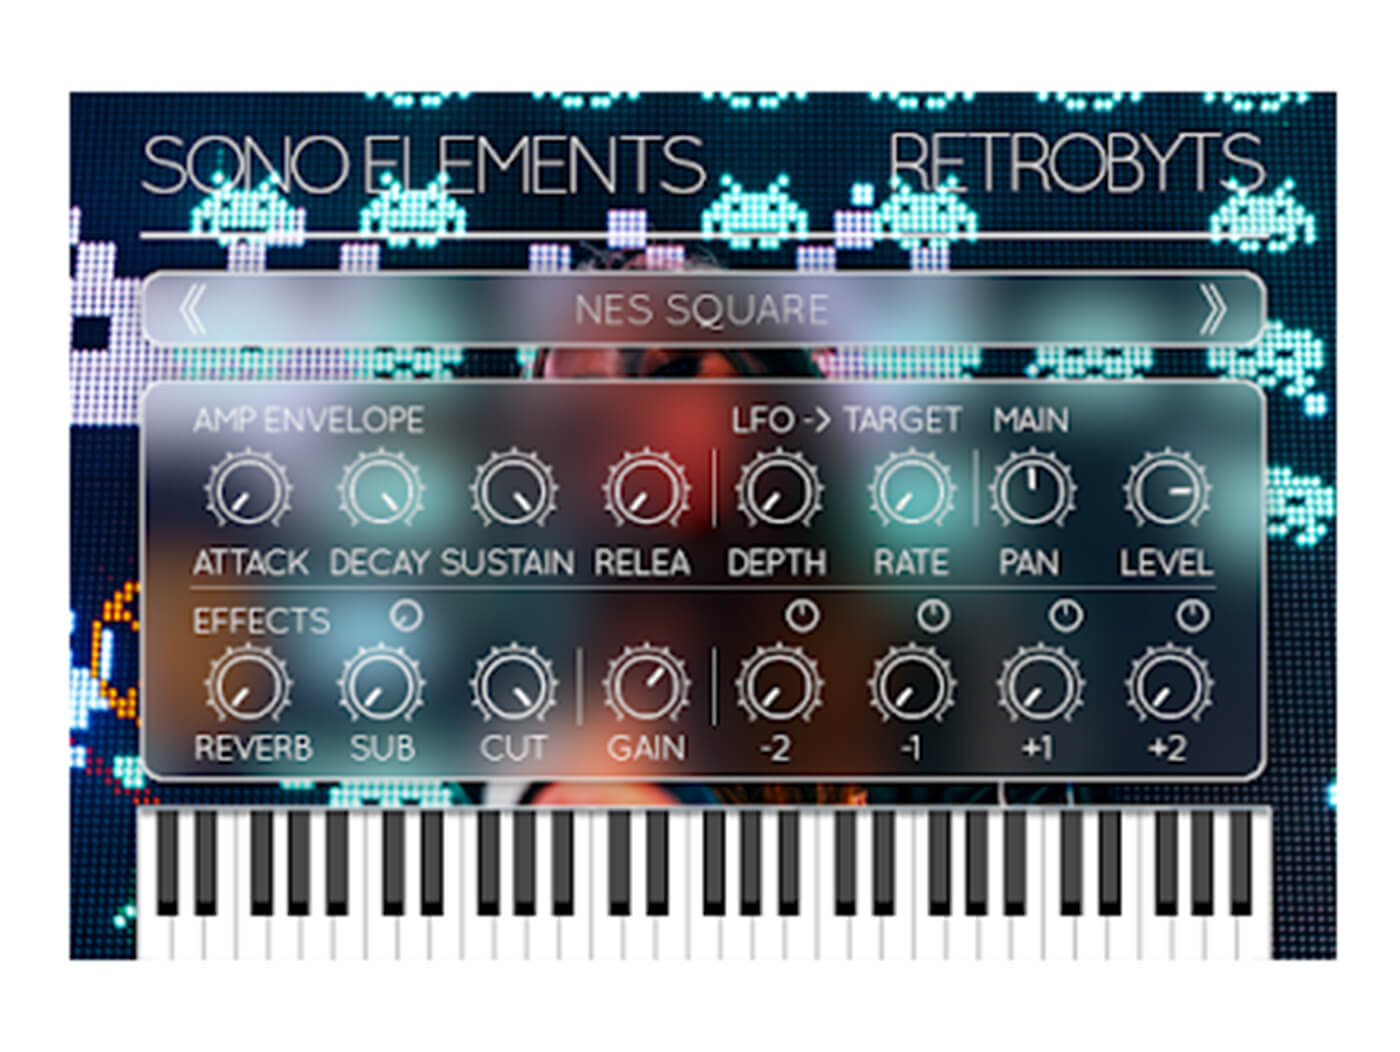 Sono Elements' RetroByts plug-in reproduces 80s chiptune music